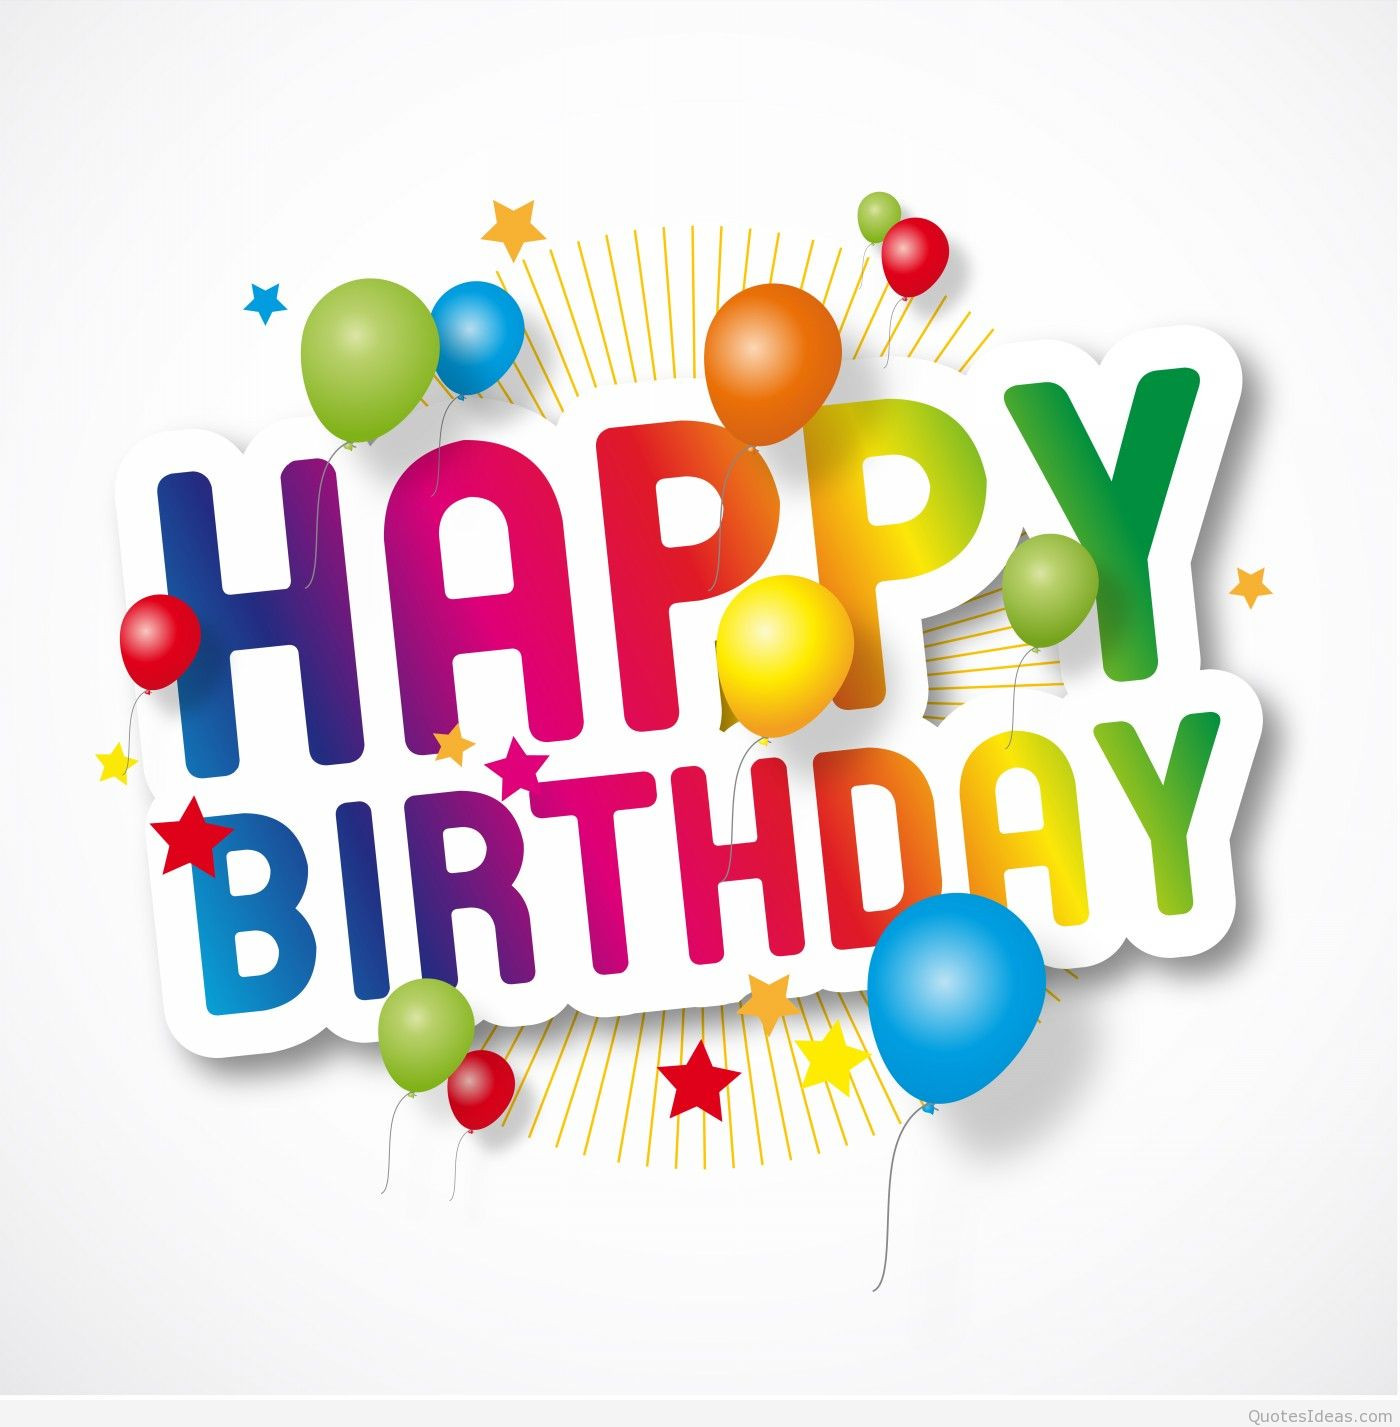 Best ideas about How To Wish Someone Happy Birthday . Save or Pin Happy birthday cards wishes messages 2015 2016 Now.